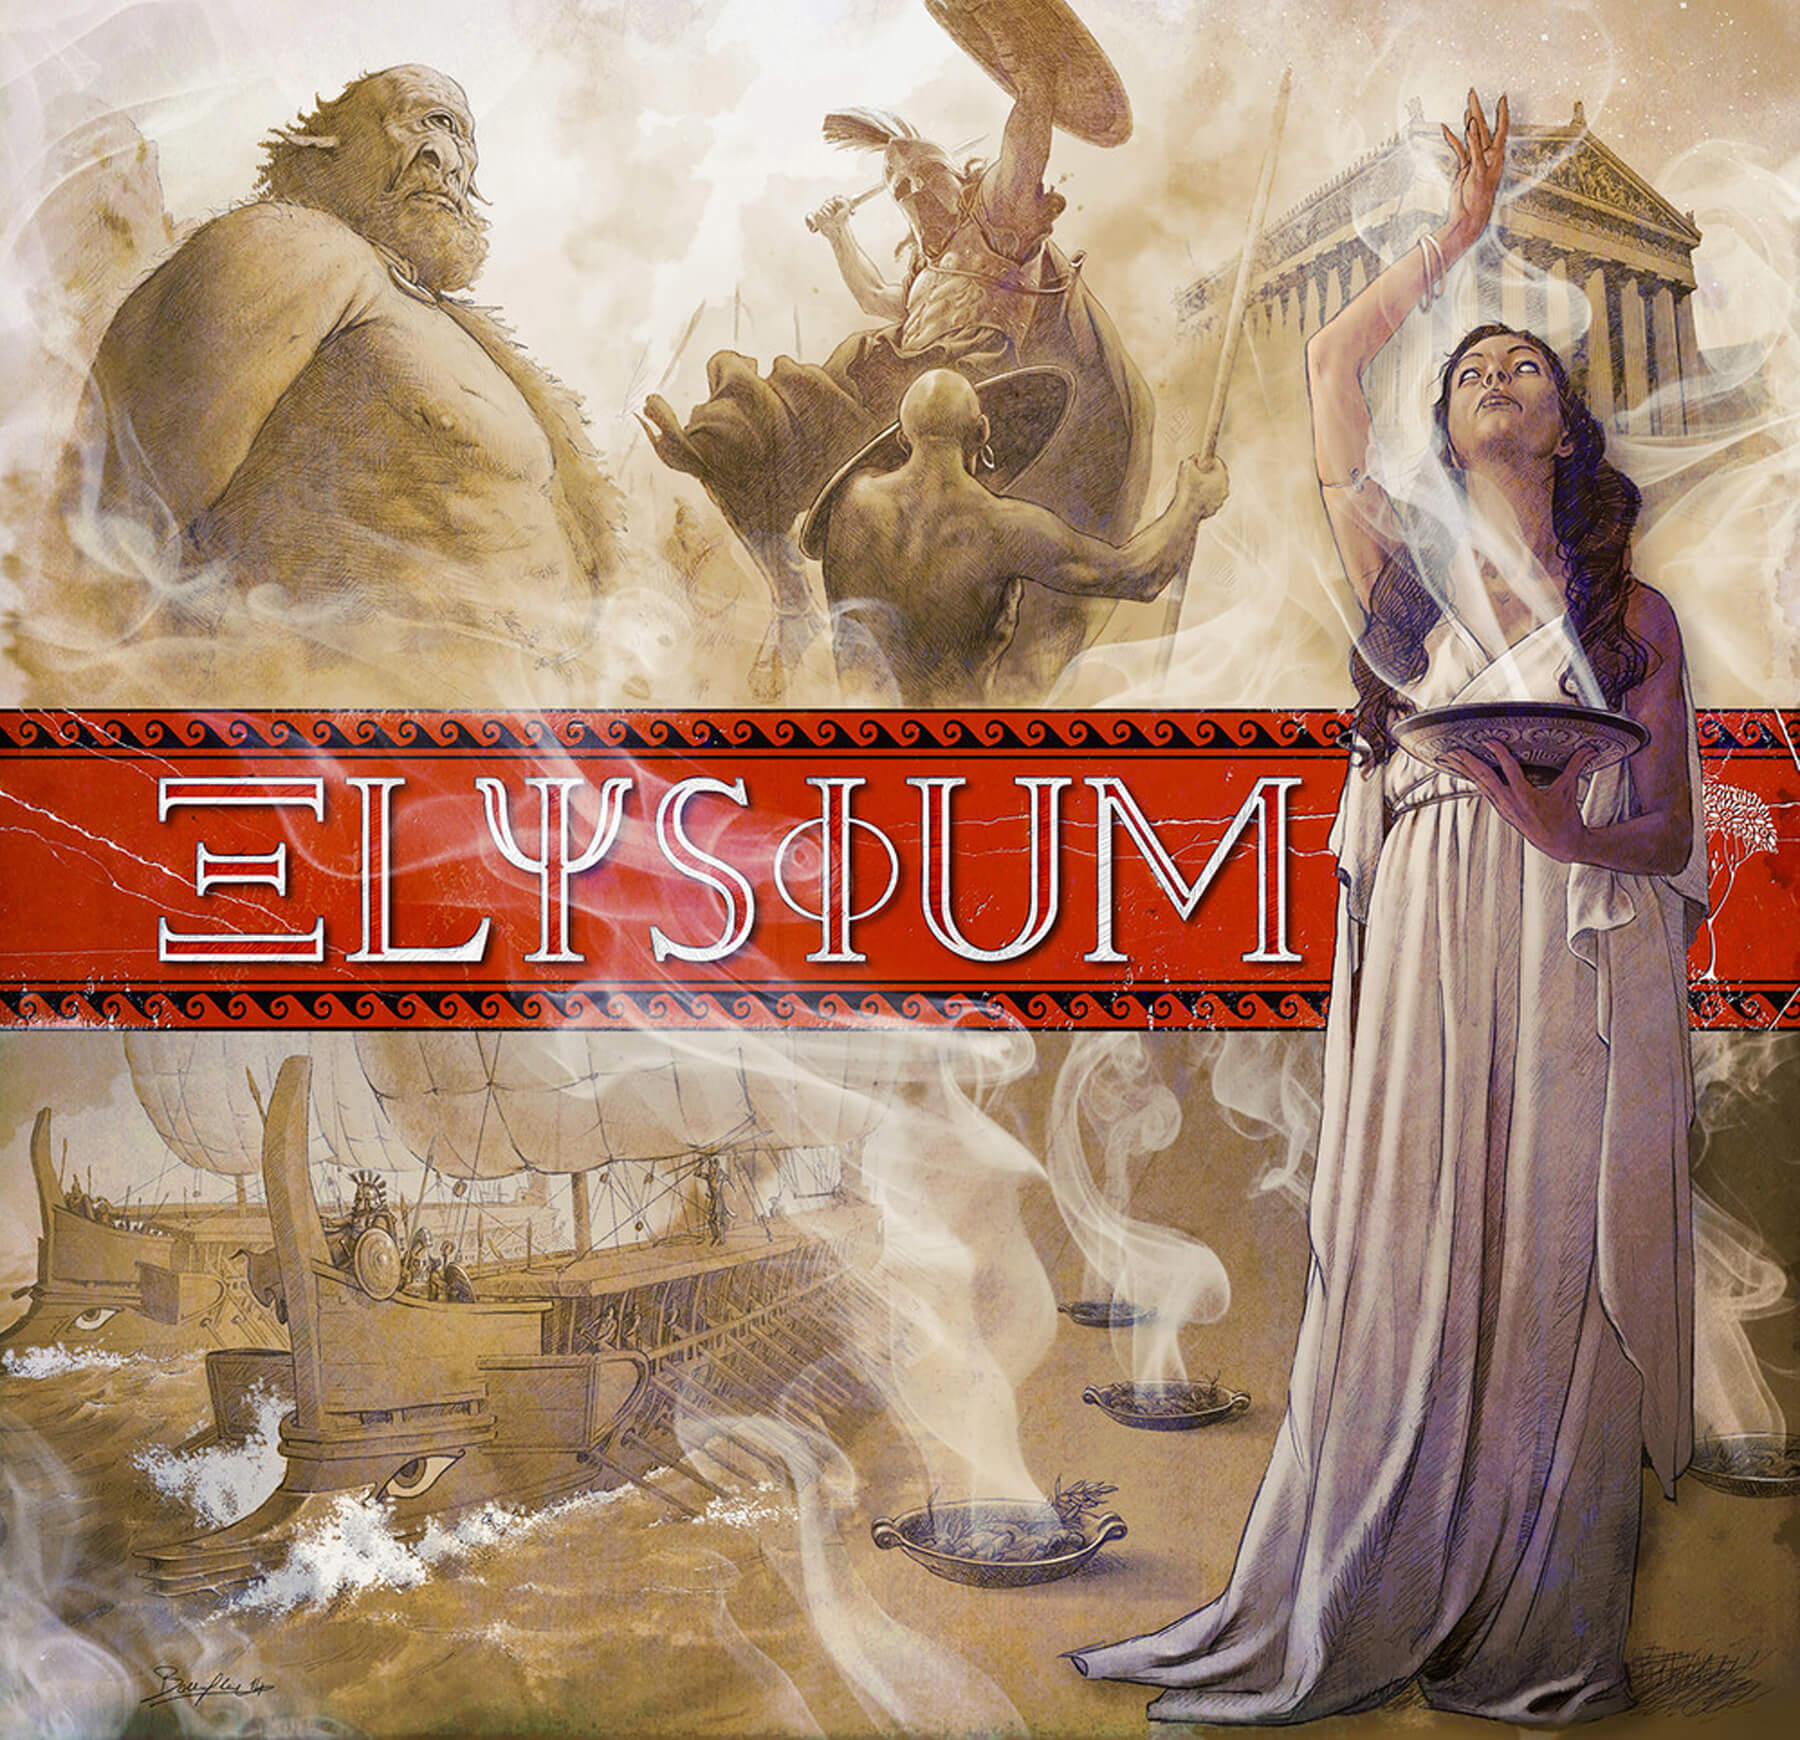 The cover art for the board game Elysium.